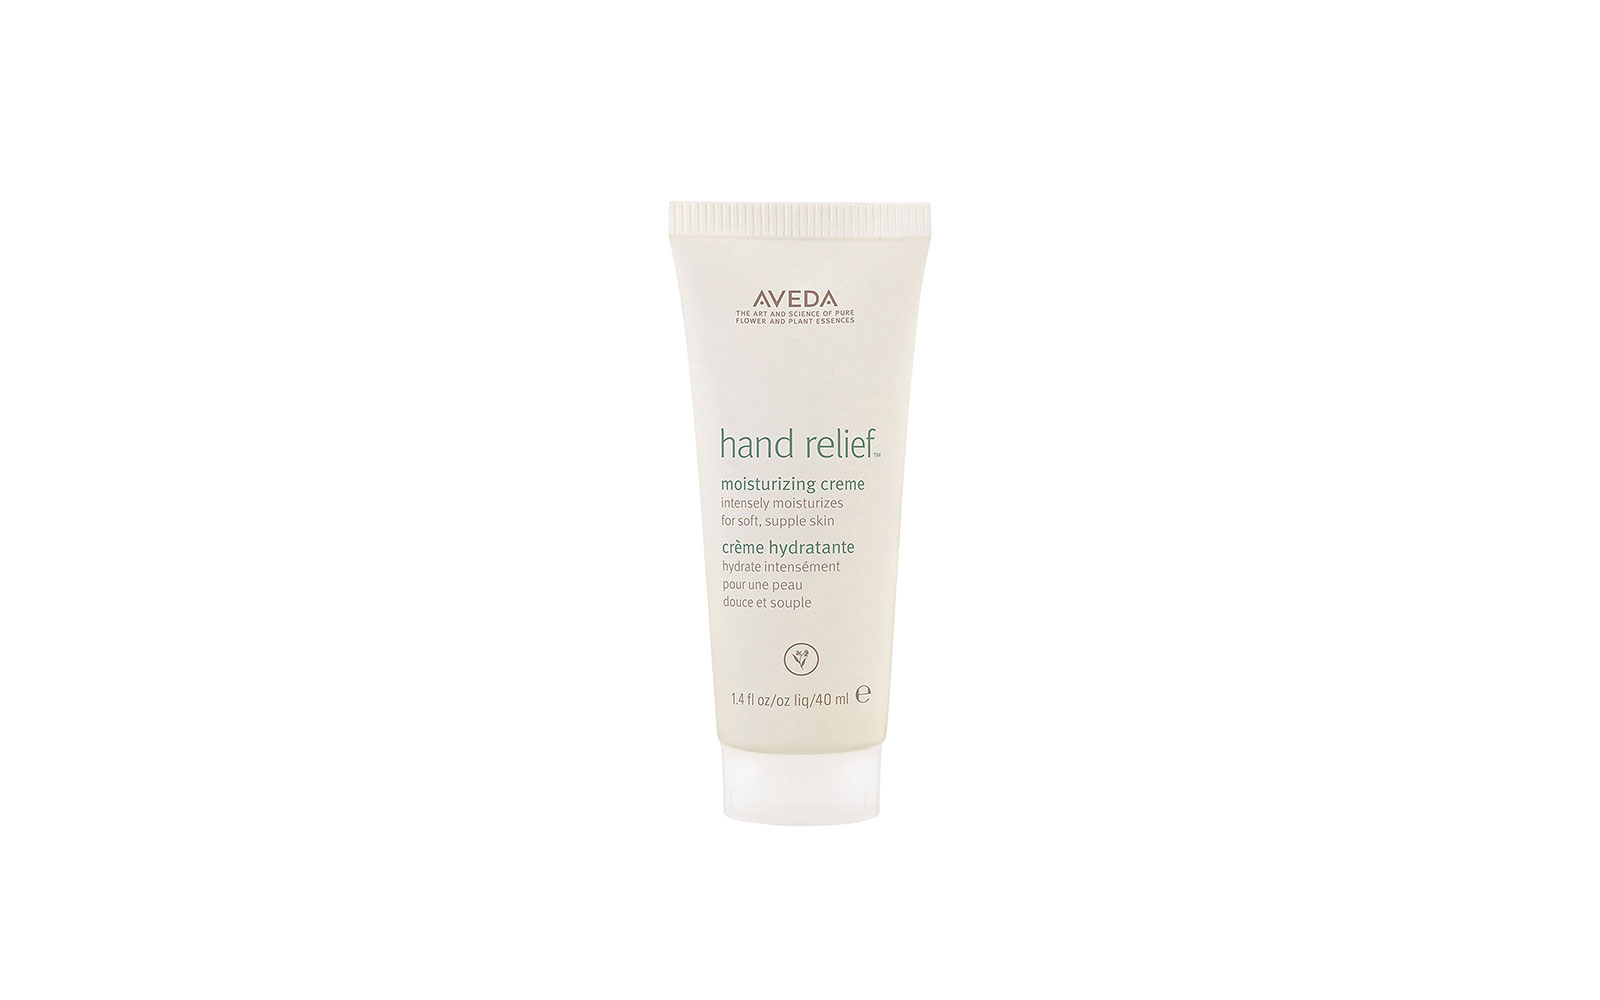 Best Hand Cream for Sensitive Skin: Aveda Hand Relief